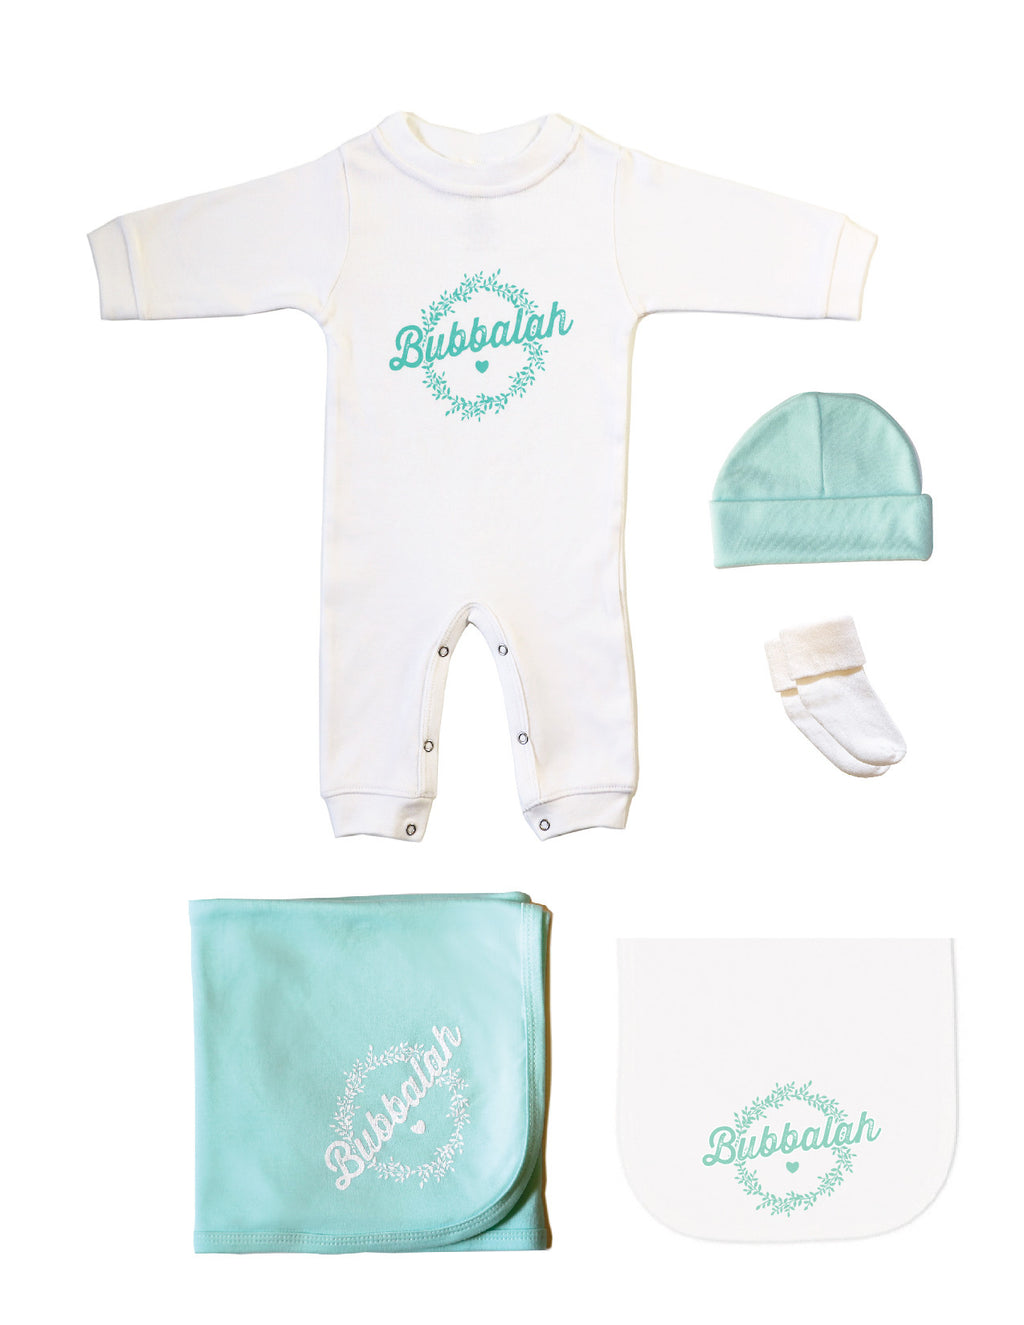 Green infant baby newborn clothing gift set with sleep and play, hat, socks, blanket, burp cloth with Yiddish design saying